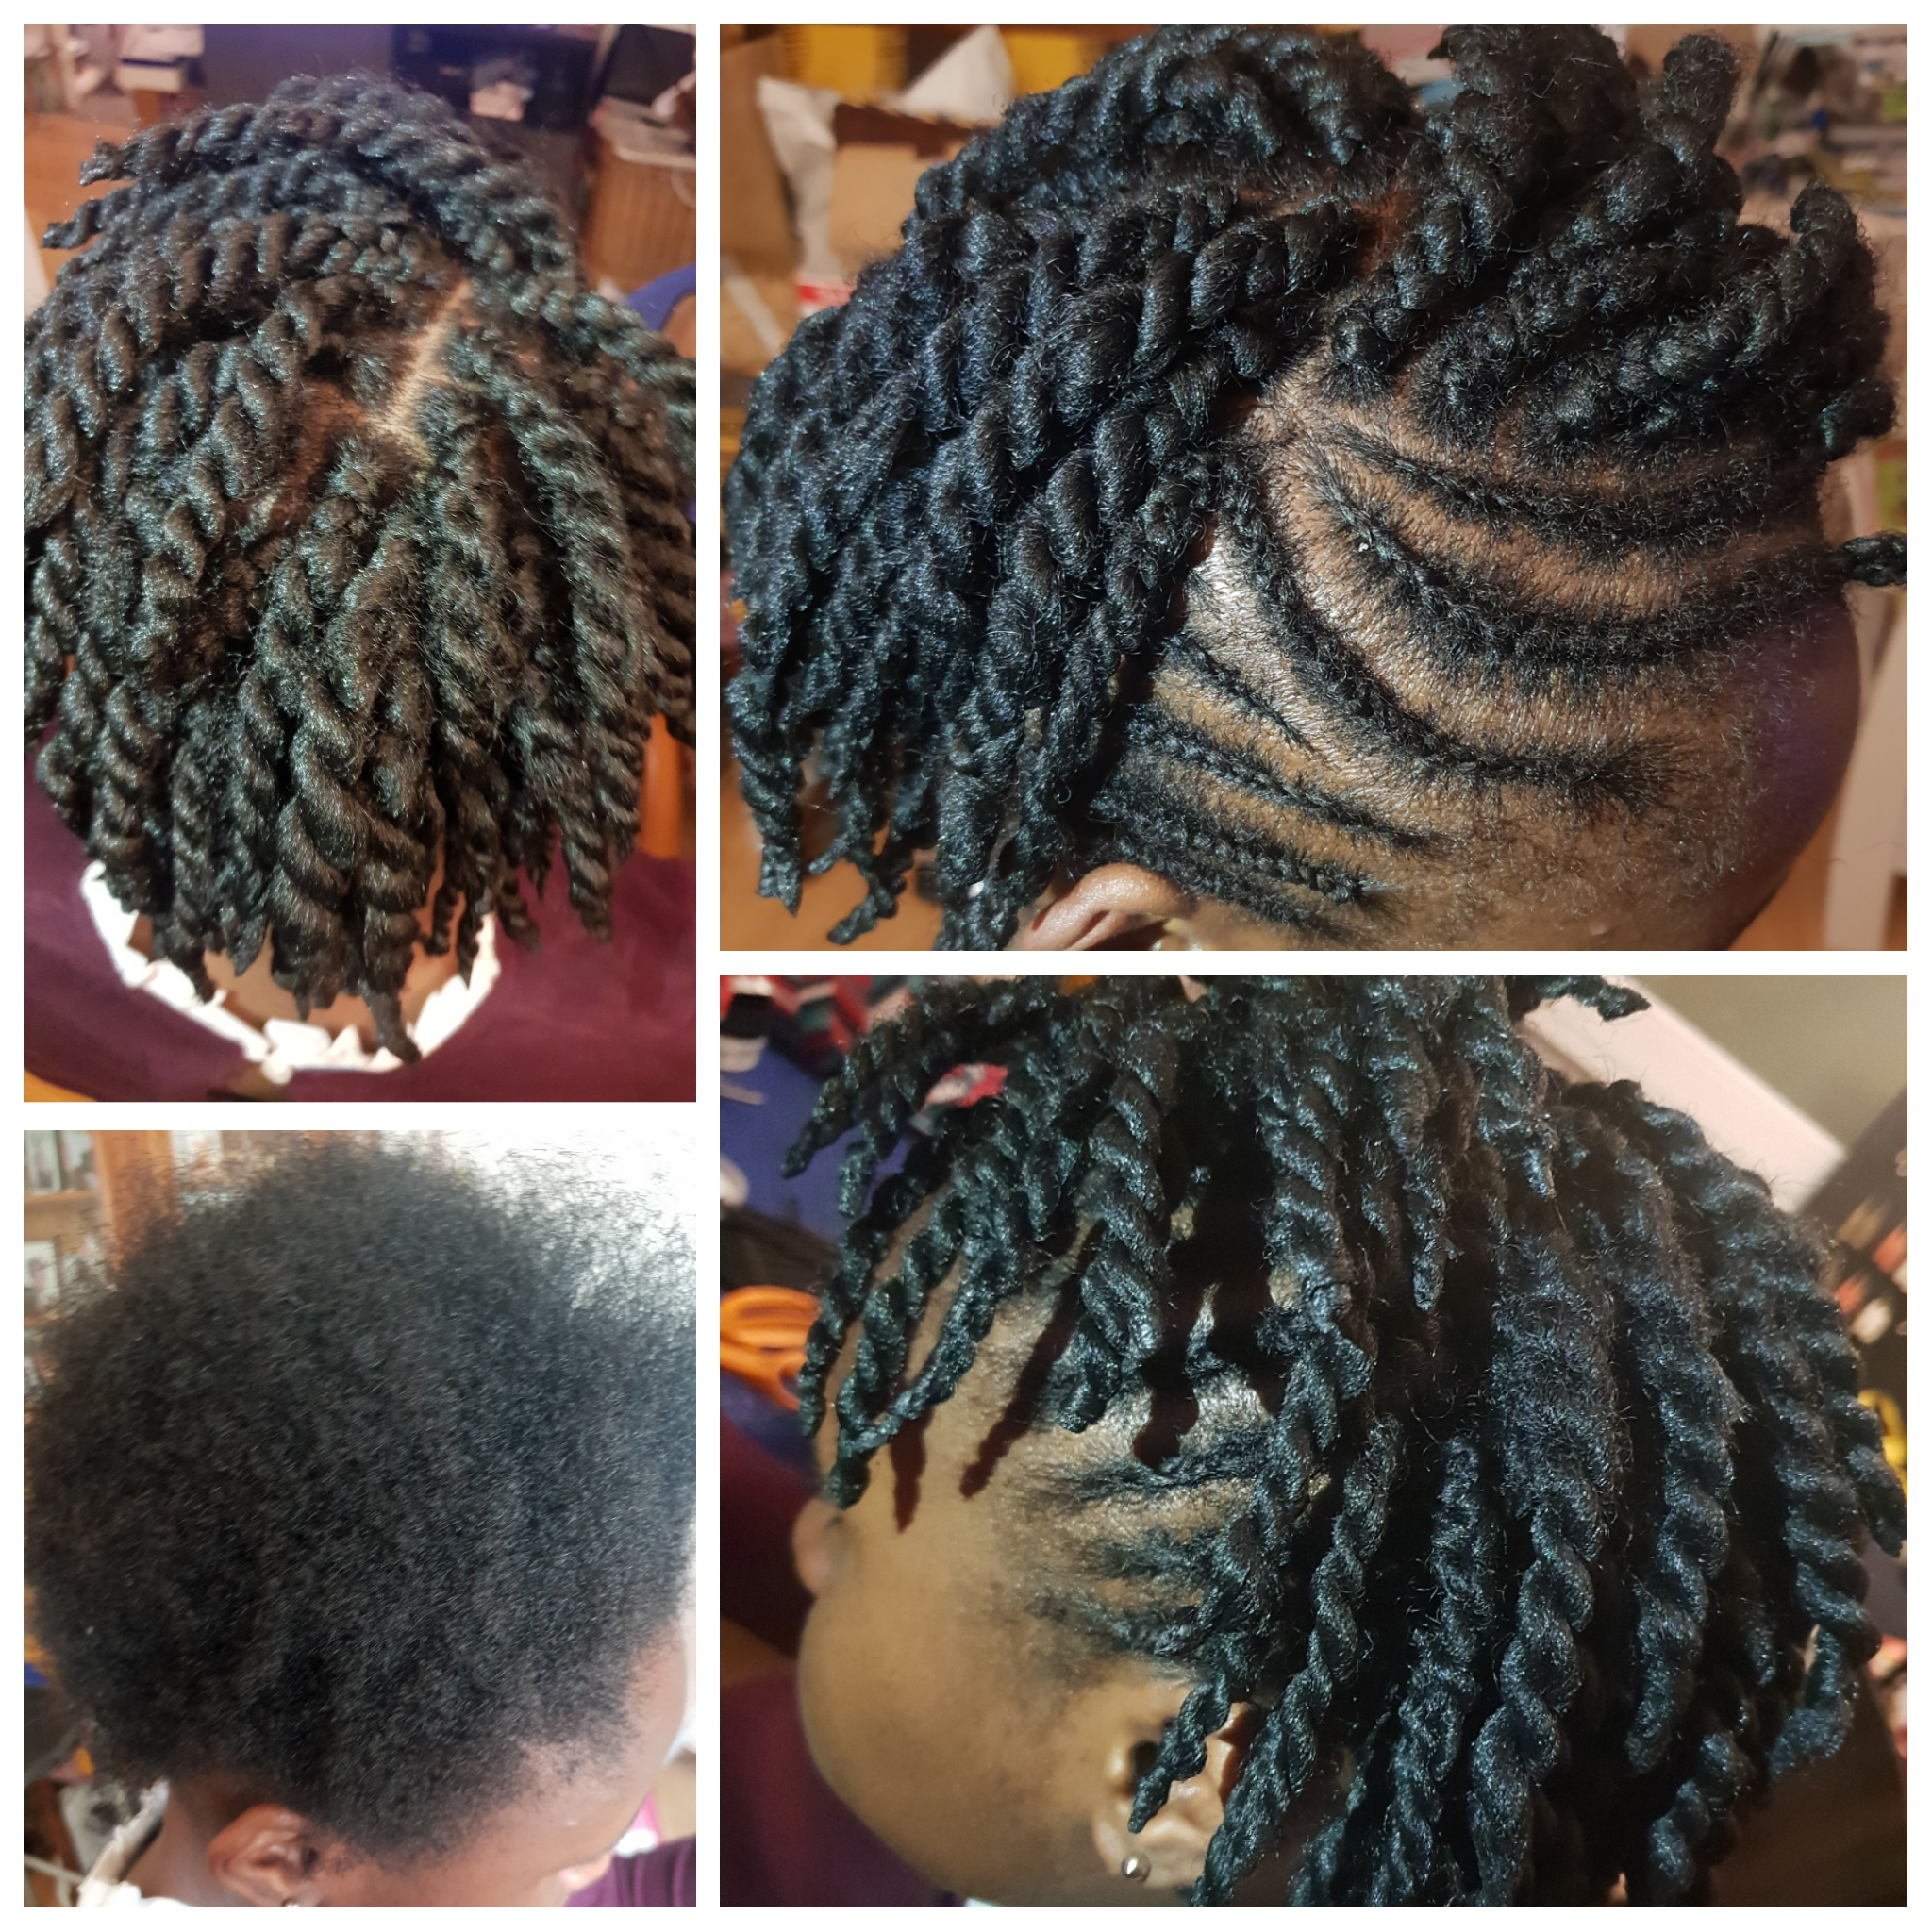 salon de coiffure afro tresse tresses box braids crochet braids vanilles tissages paris 75 77 78 91 92 93 94 95 WBBTPGMH